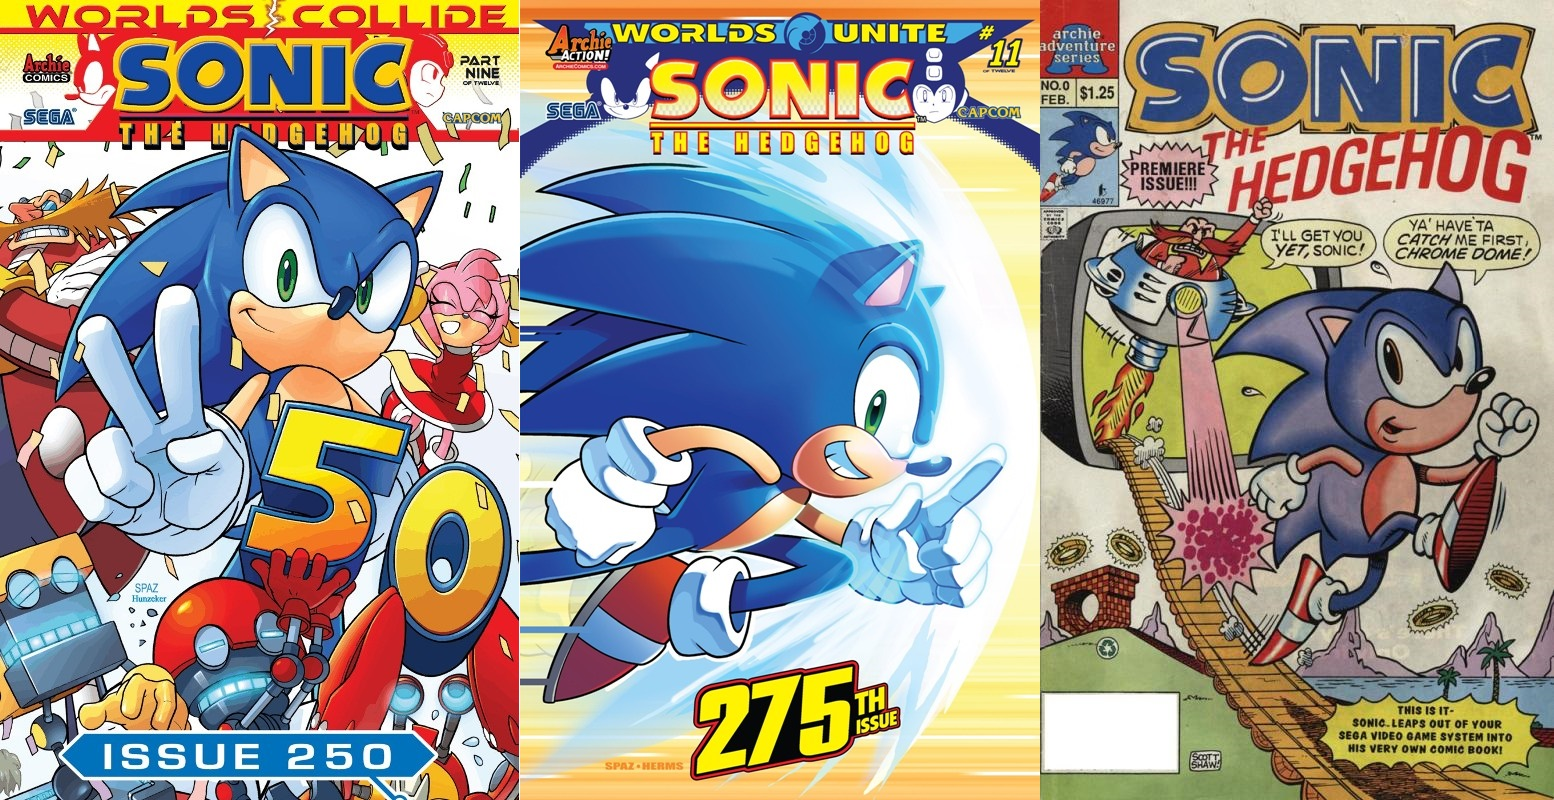 Hedgehogs Can't Swim: Archie Sonic Comic Reviews: Introduction